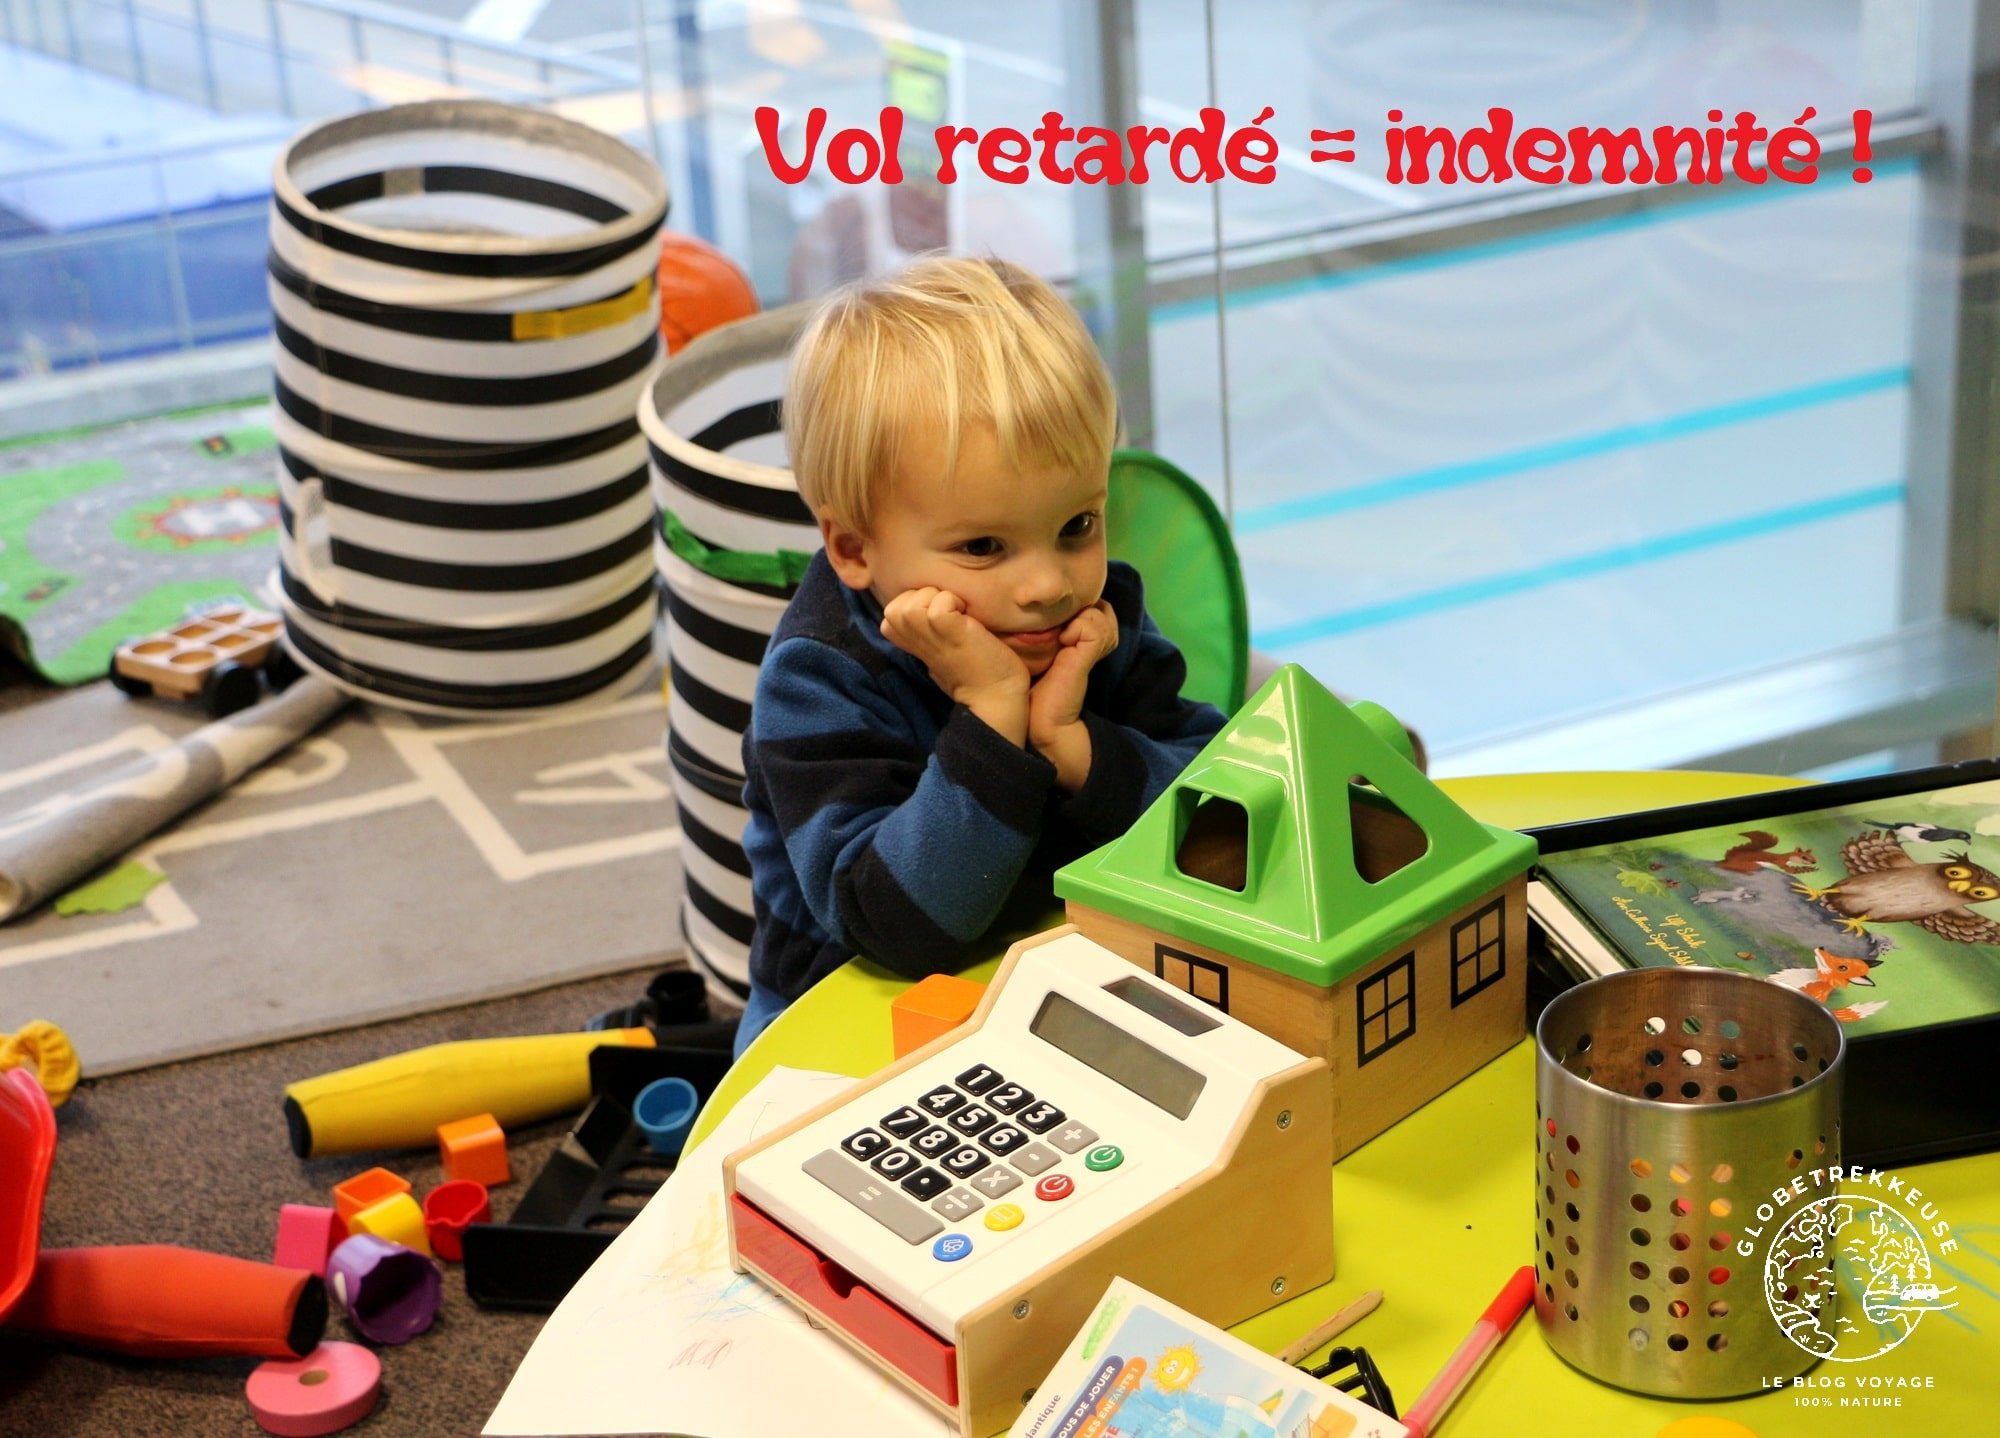 vol retard indemnite